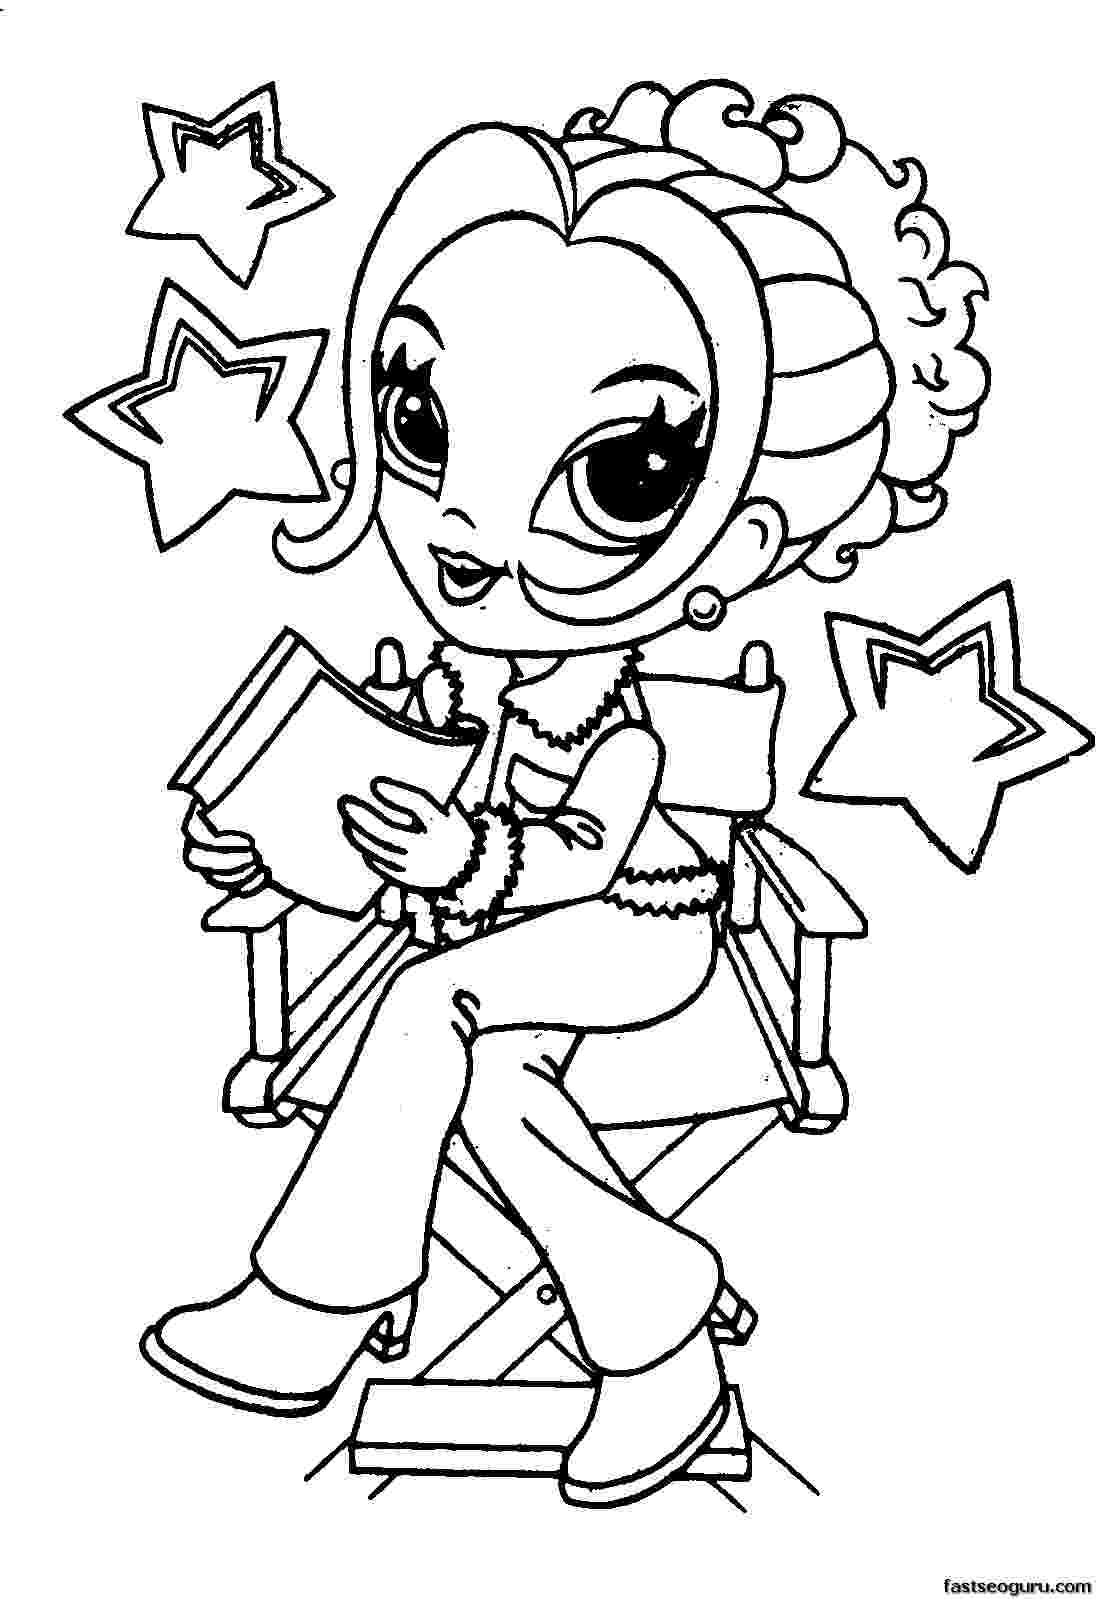 colering pages for girls coloring pages for girls best coloring pages for kids for pages girls colering